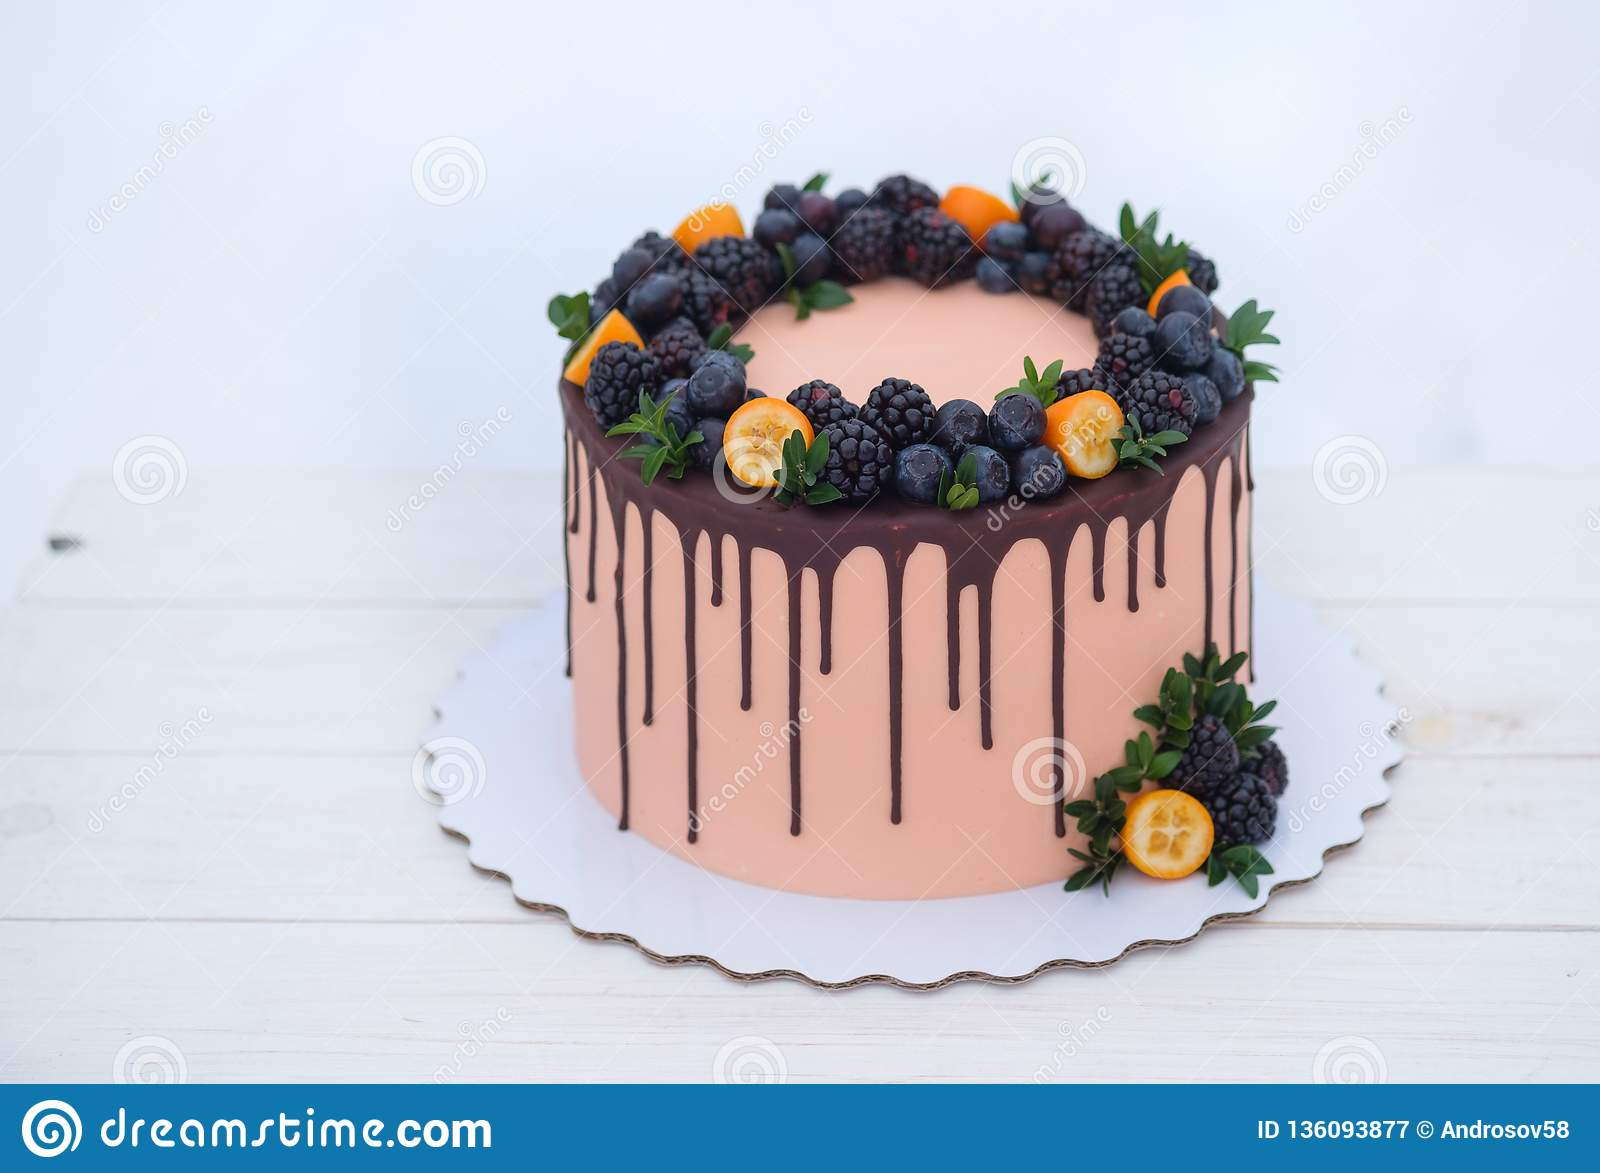 Beautiful Birthday Cake In Winter Style With Fir Branches And Natural Berries